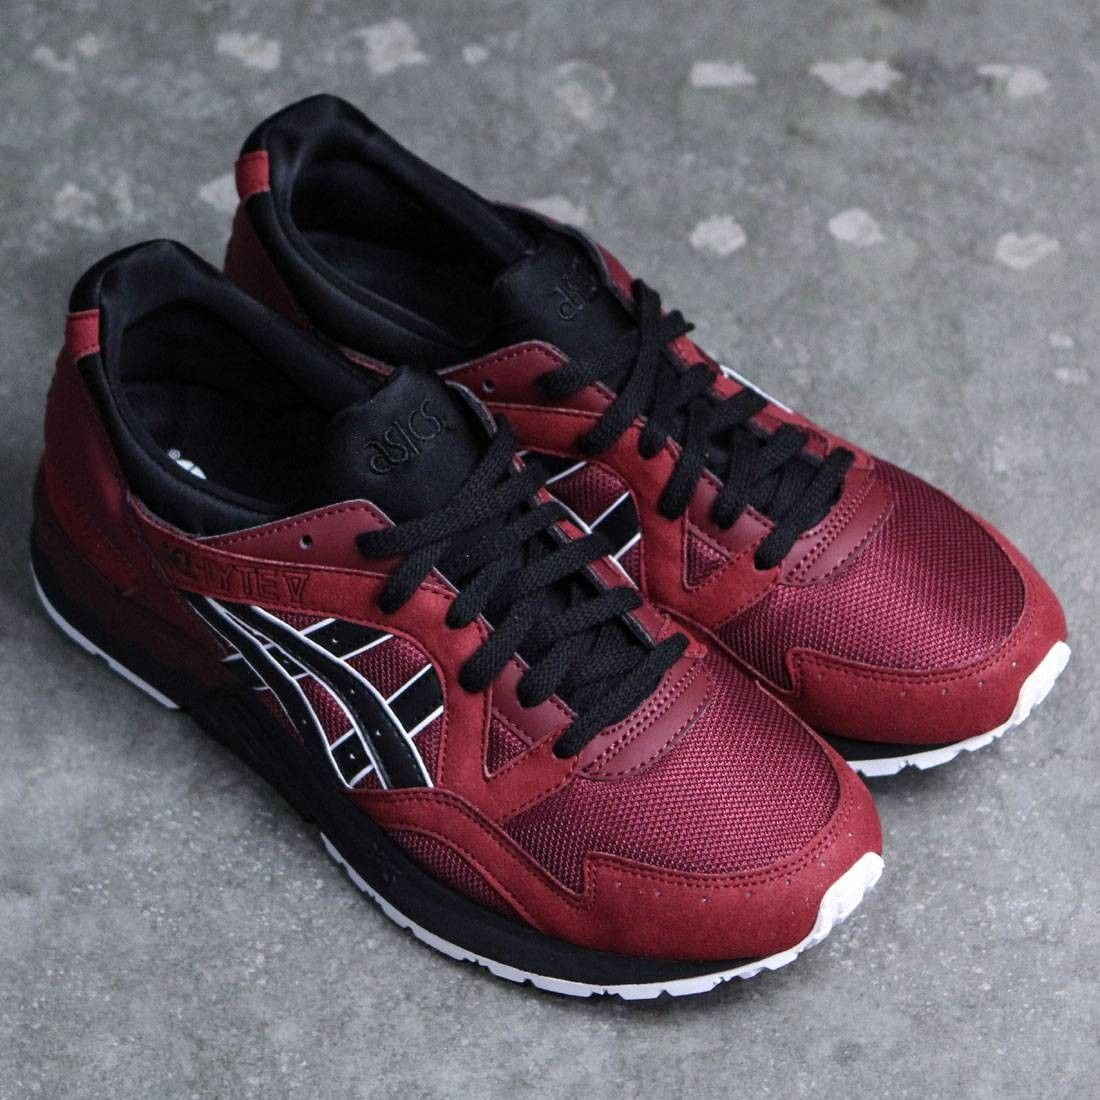 asics tiger men gel lyte v red pomegranate black